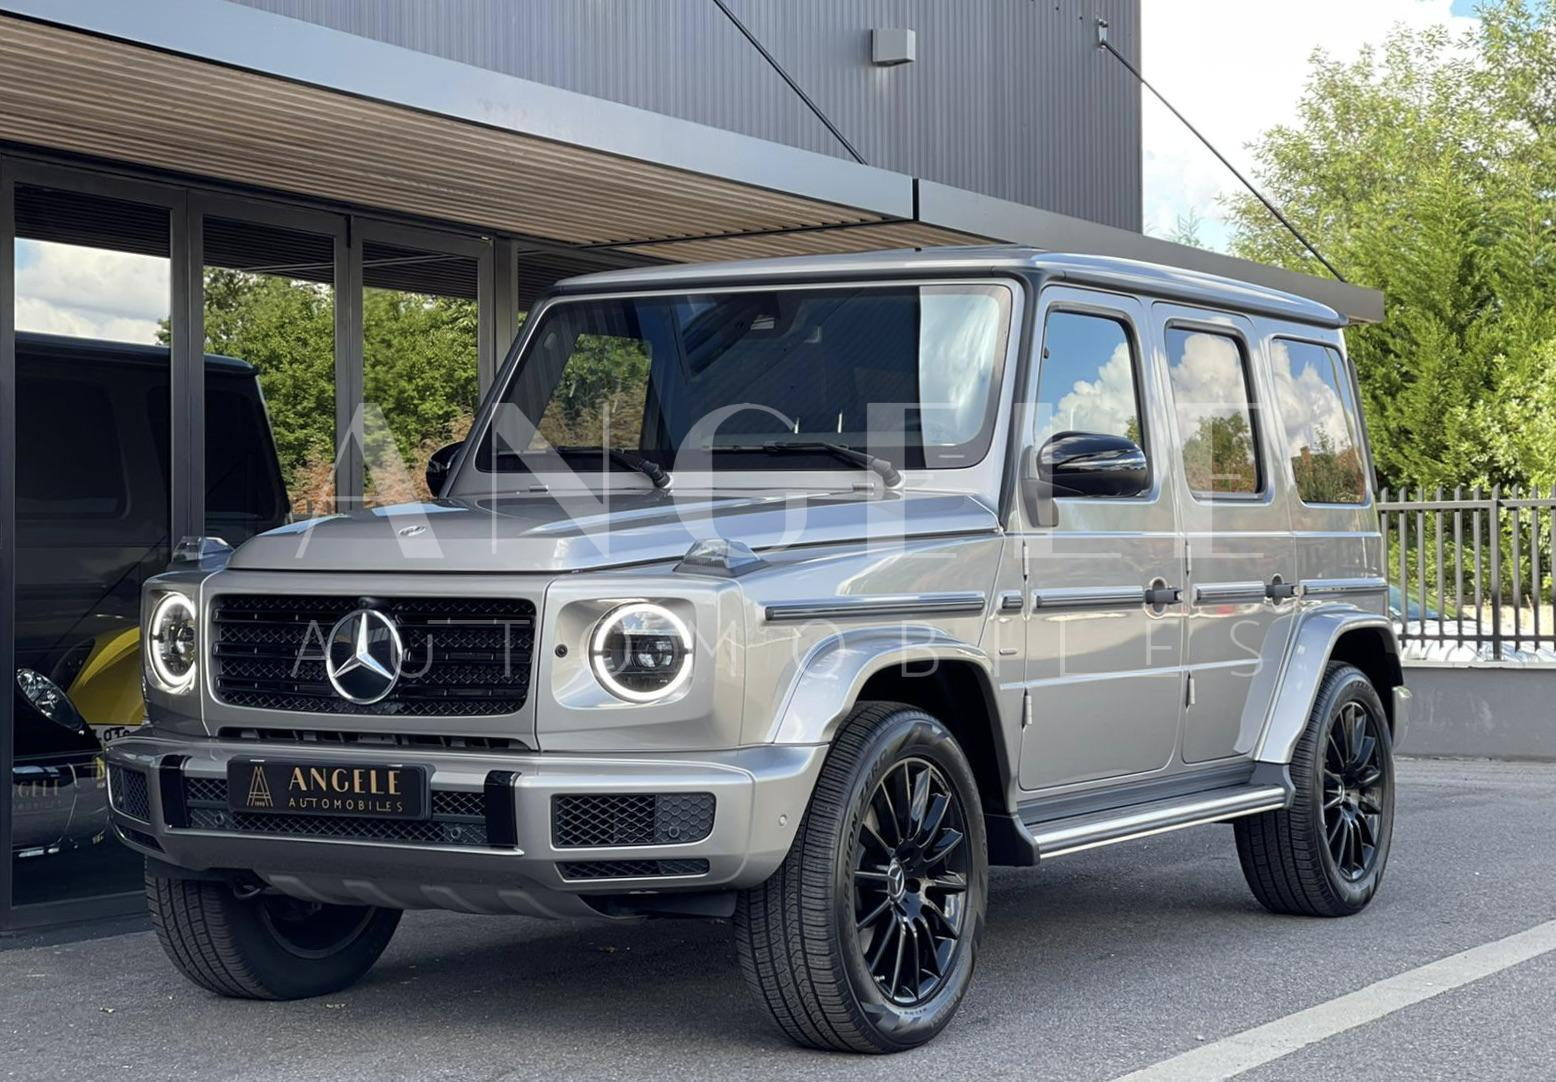 Mercedes G400 d Stronger than time - ANGELE AUTOMOBILES